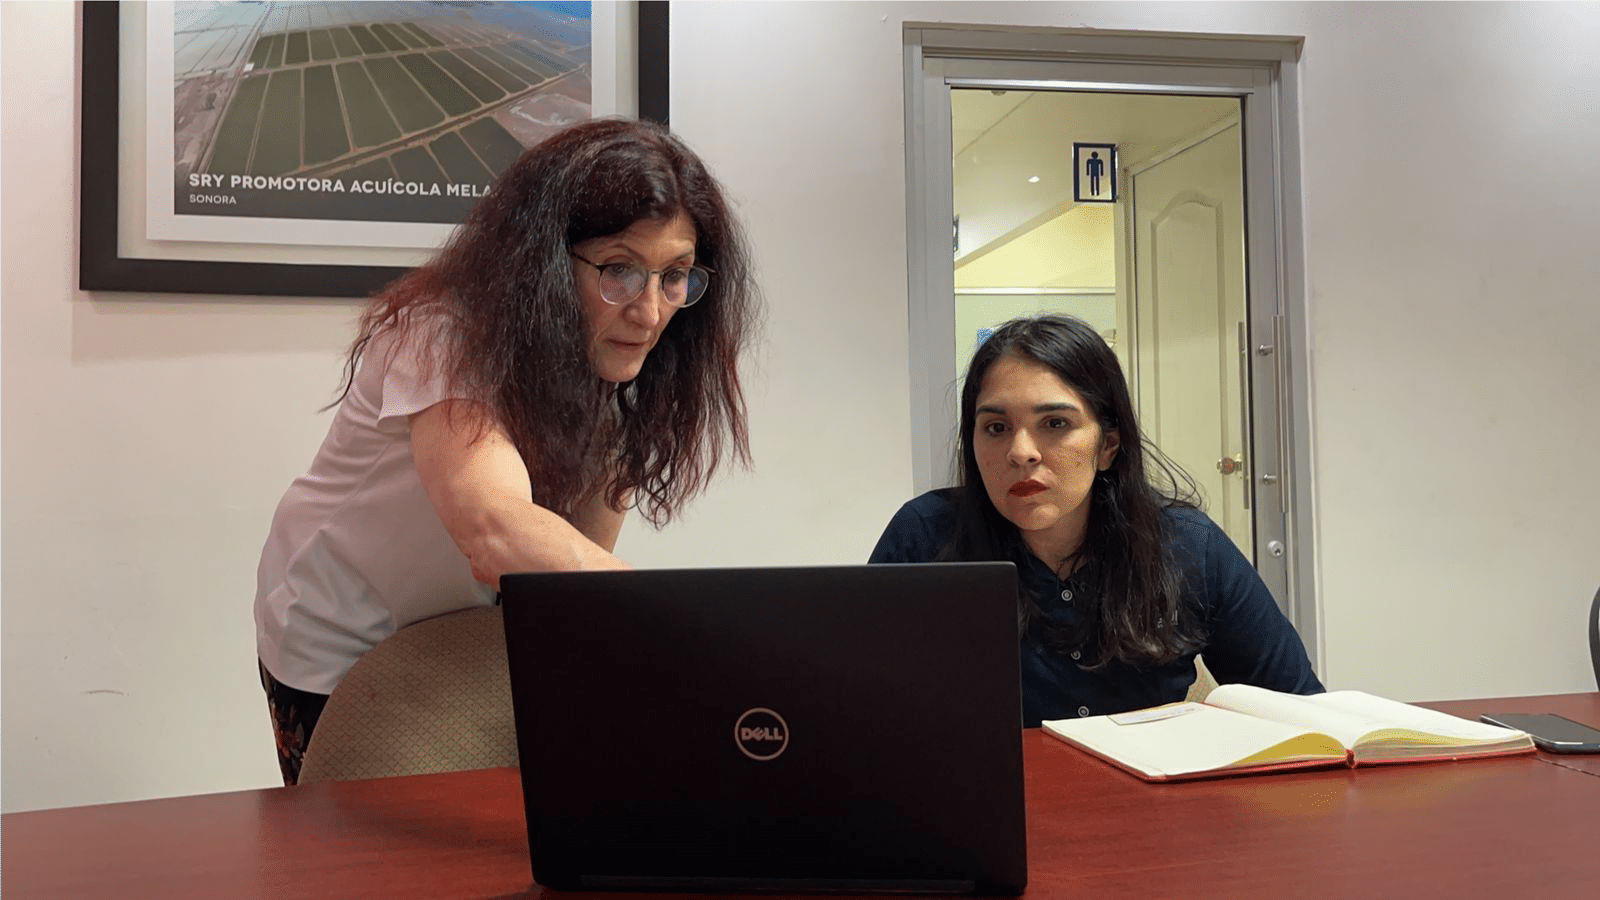 To conclude the trip, Esqueda and Chavez visited Ary Agroindustrial where they met Alejandra Escudero, the procurement manager. Esqueda spoke with Escudero about the use of DDGS and HiPro DDGS in shrimp production, emphasizing the importance of considering amino acid digestibility in protein ingredients.